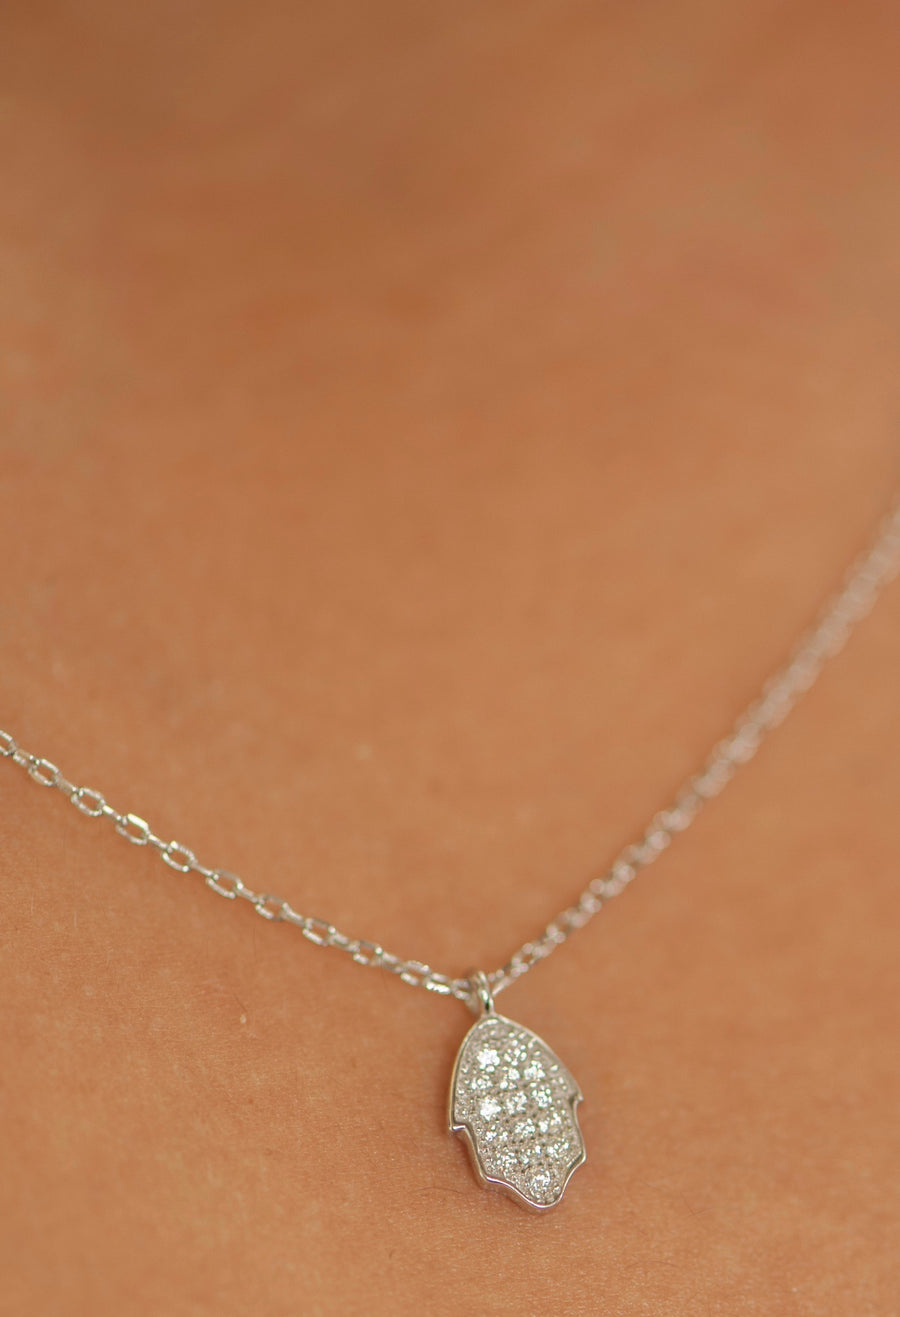 Mini Hamsa Necklace - Sterling Silver